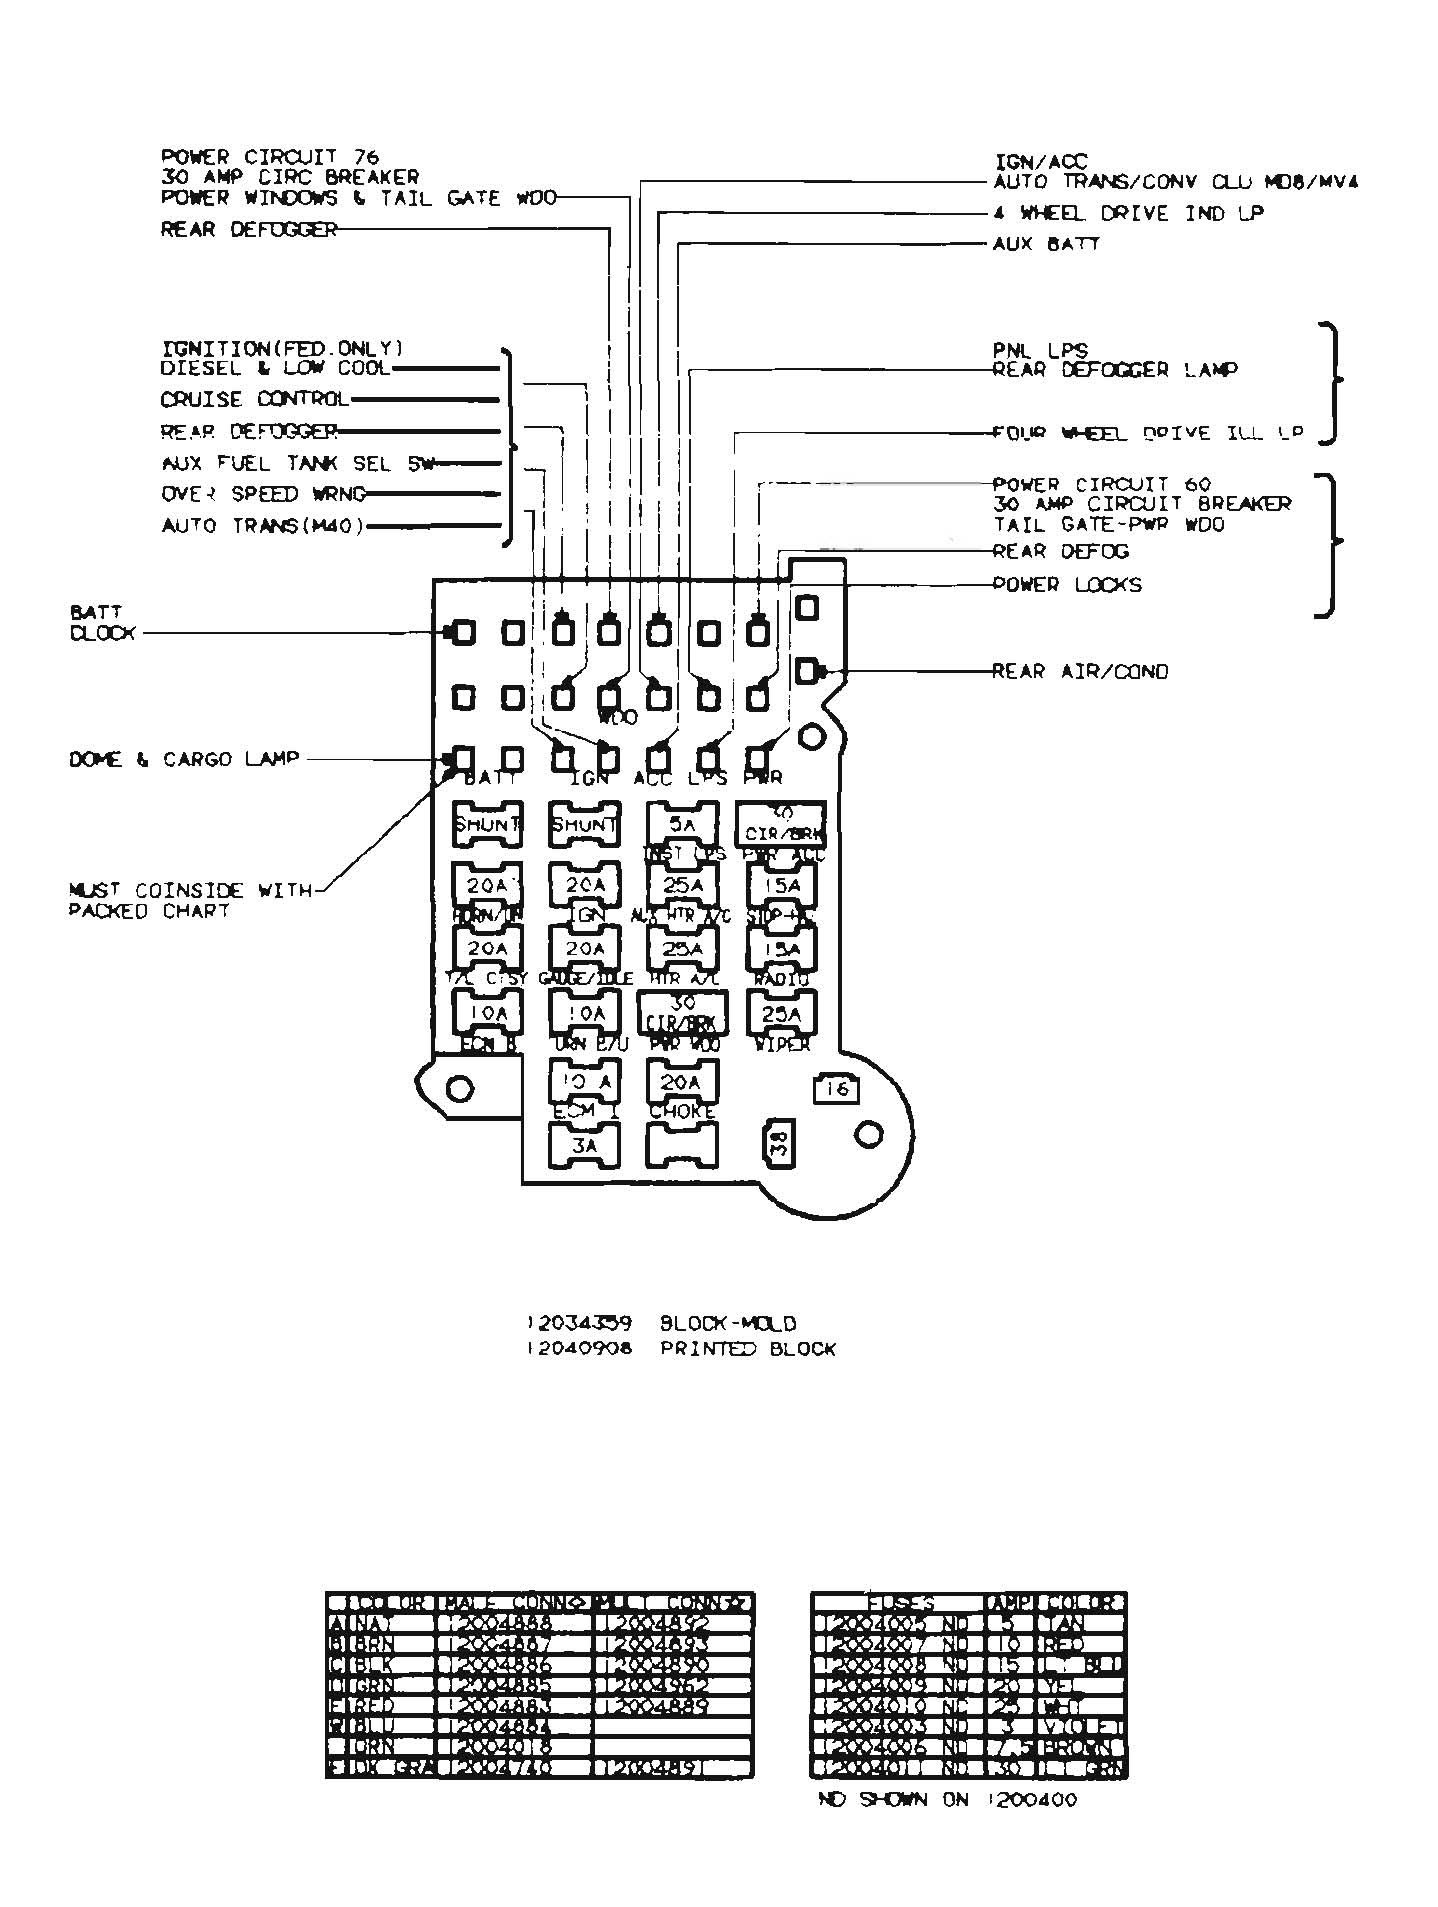 1987 Chevy Truck Fuse Box Command And Control Wiring Diagrams Begeboy Wiring Diagram Source